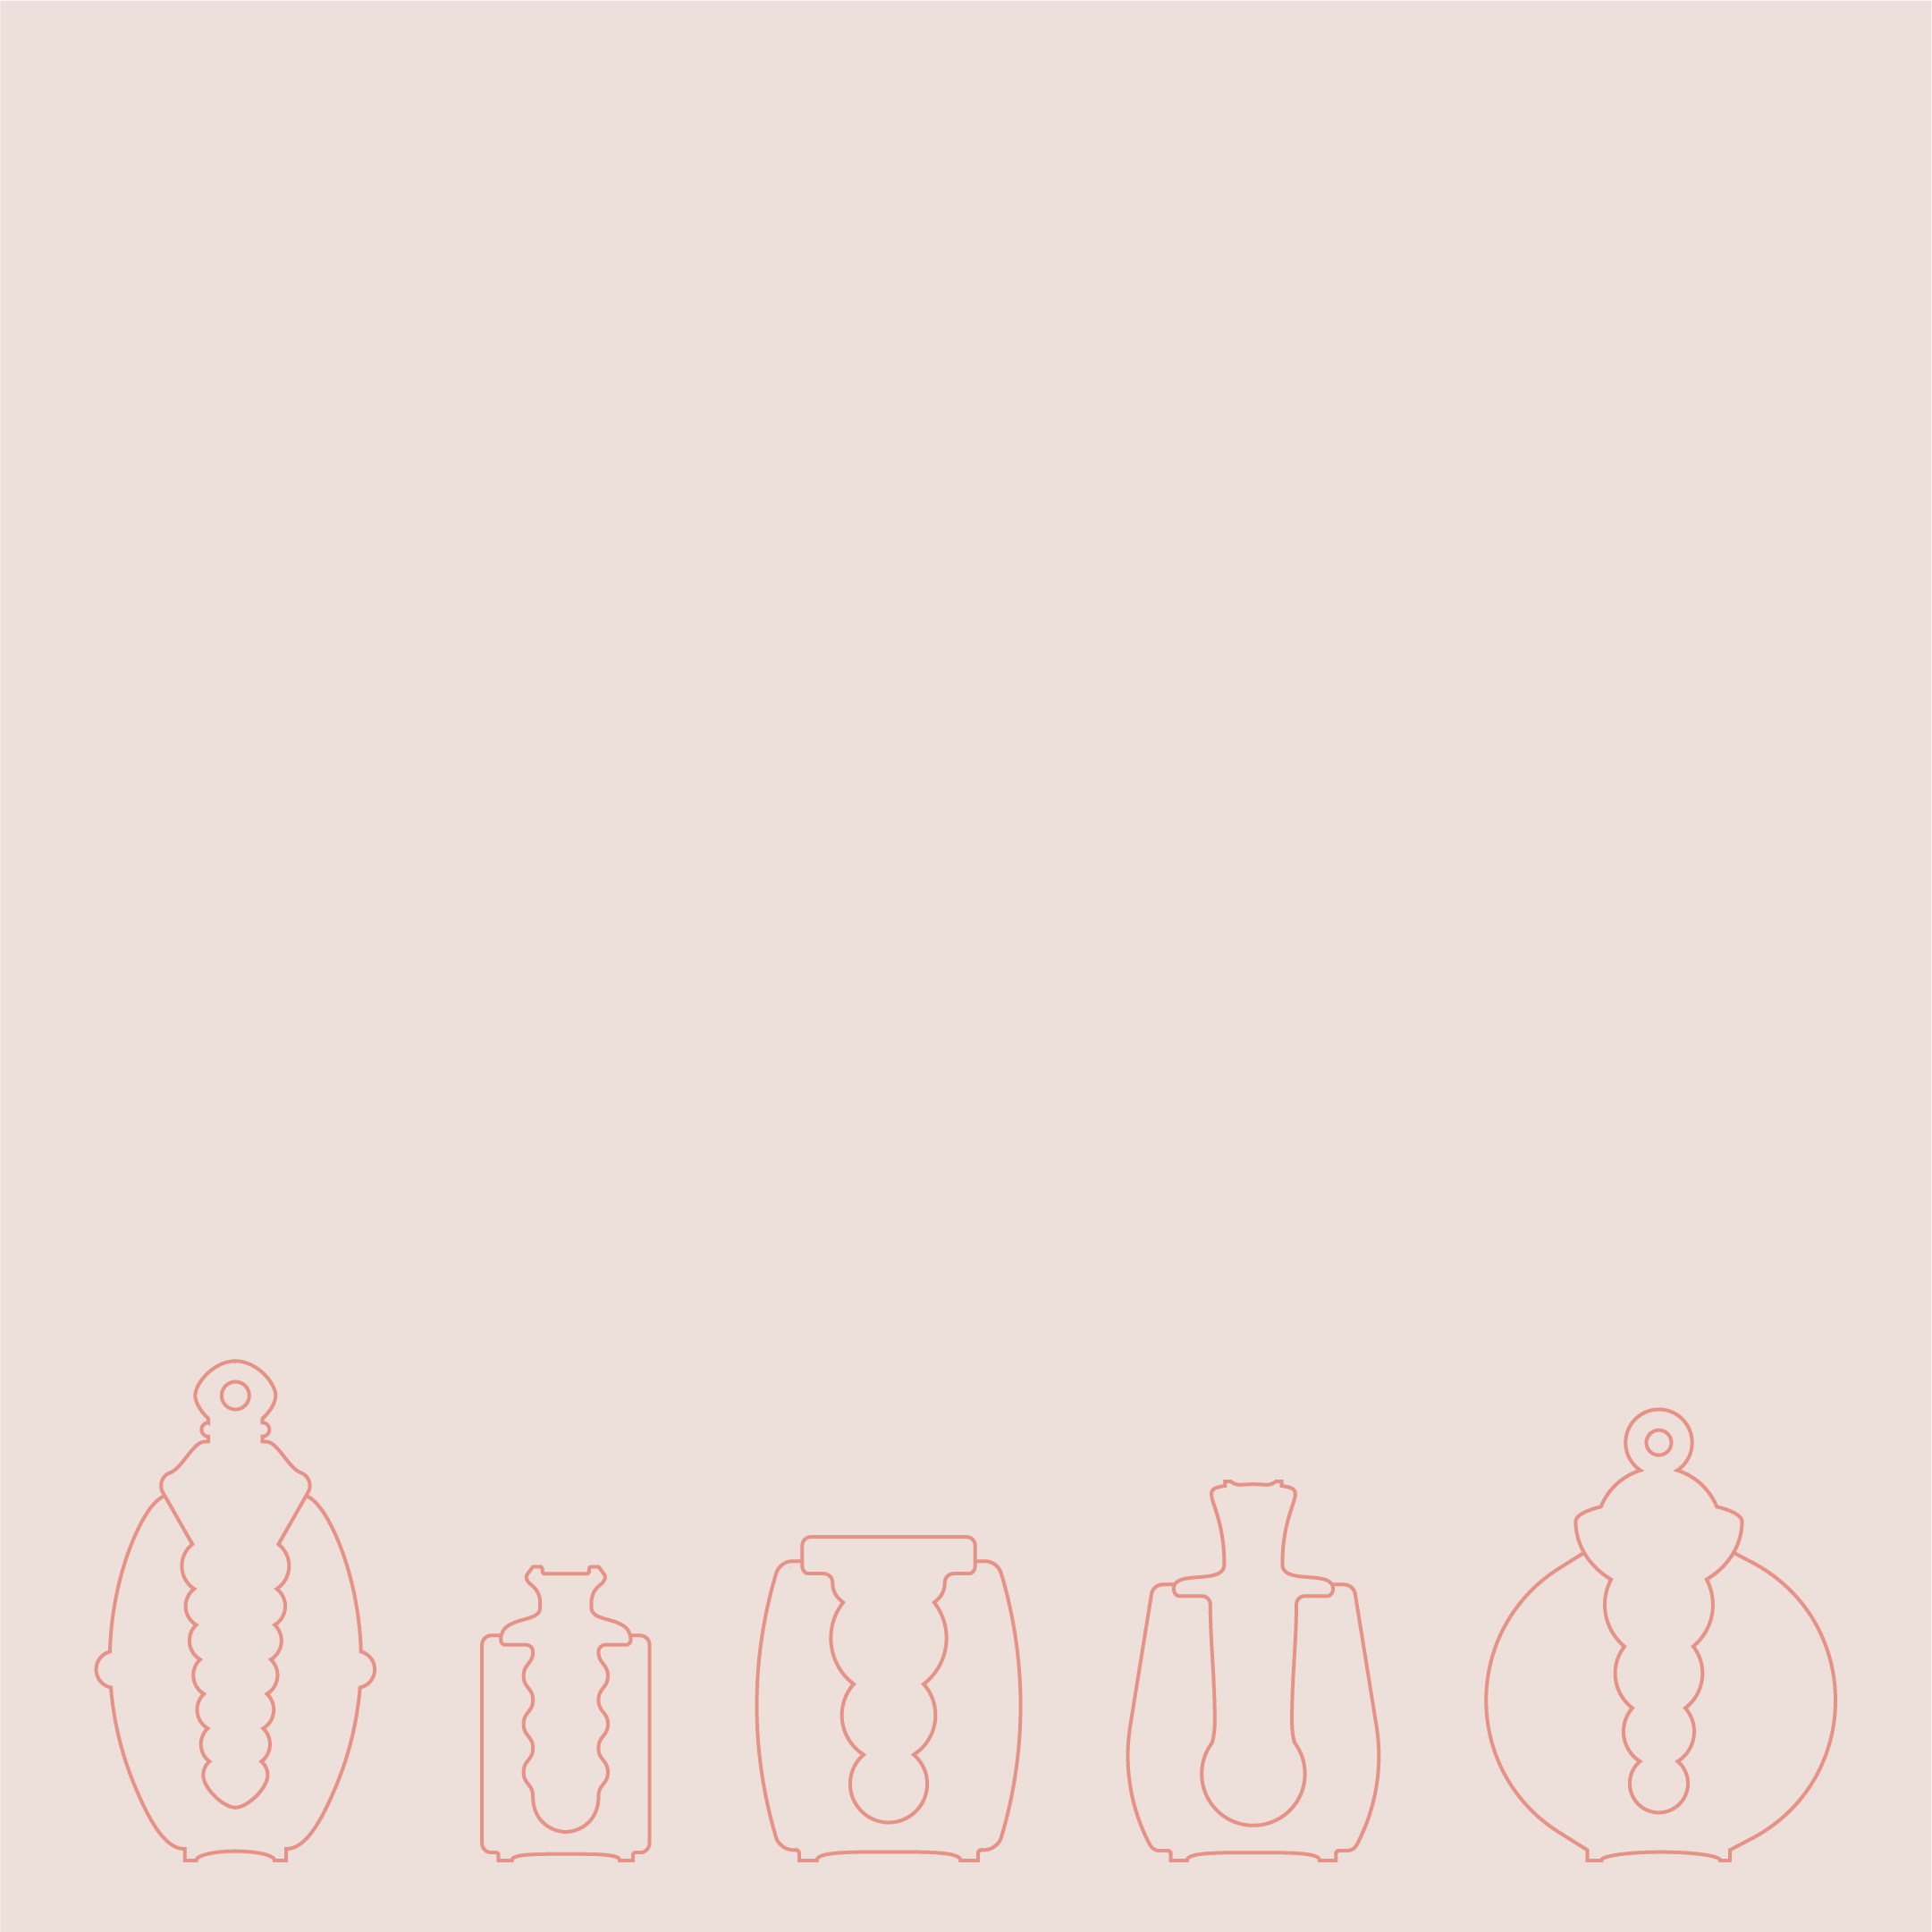 Euforia - The first collection of dildos in a vase. Euforia is our first shape of pleasure, designed to elevate sex for all - without revealing too much.